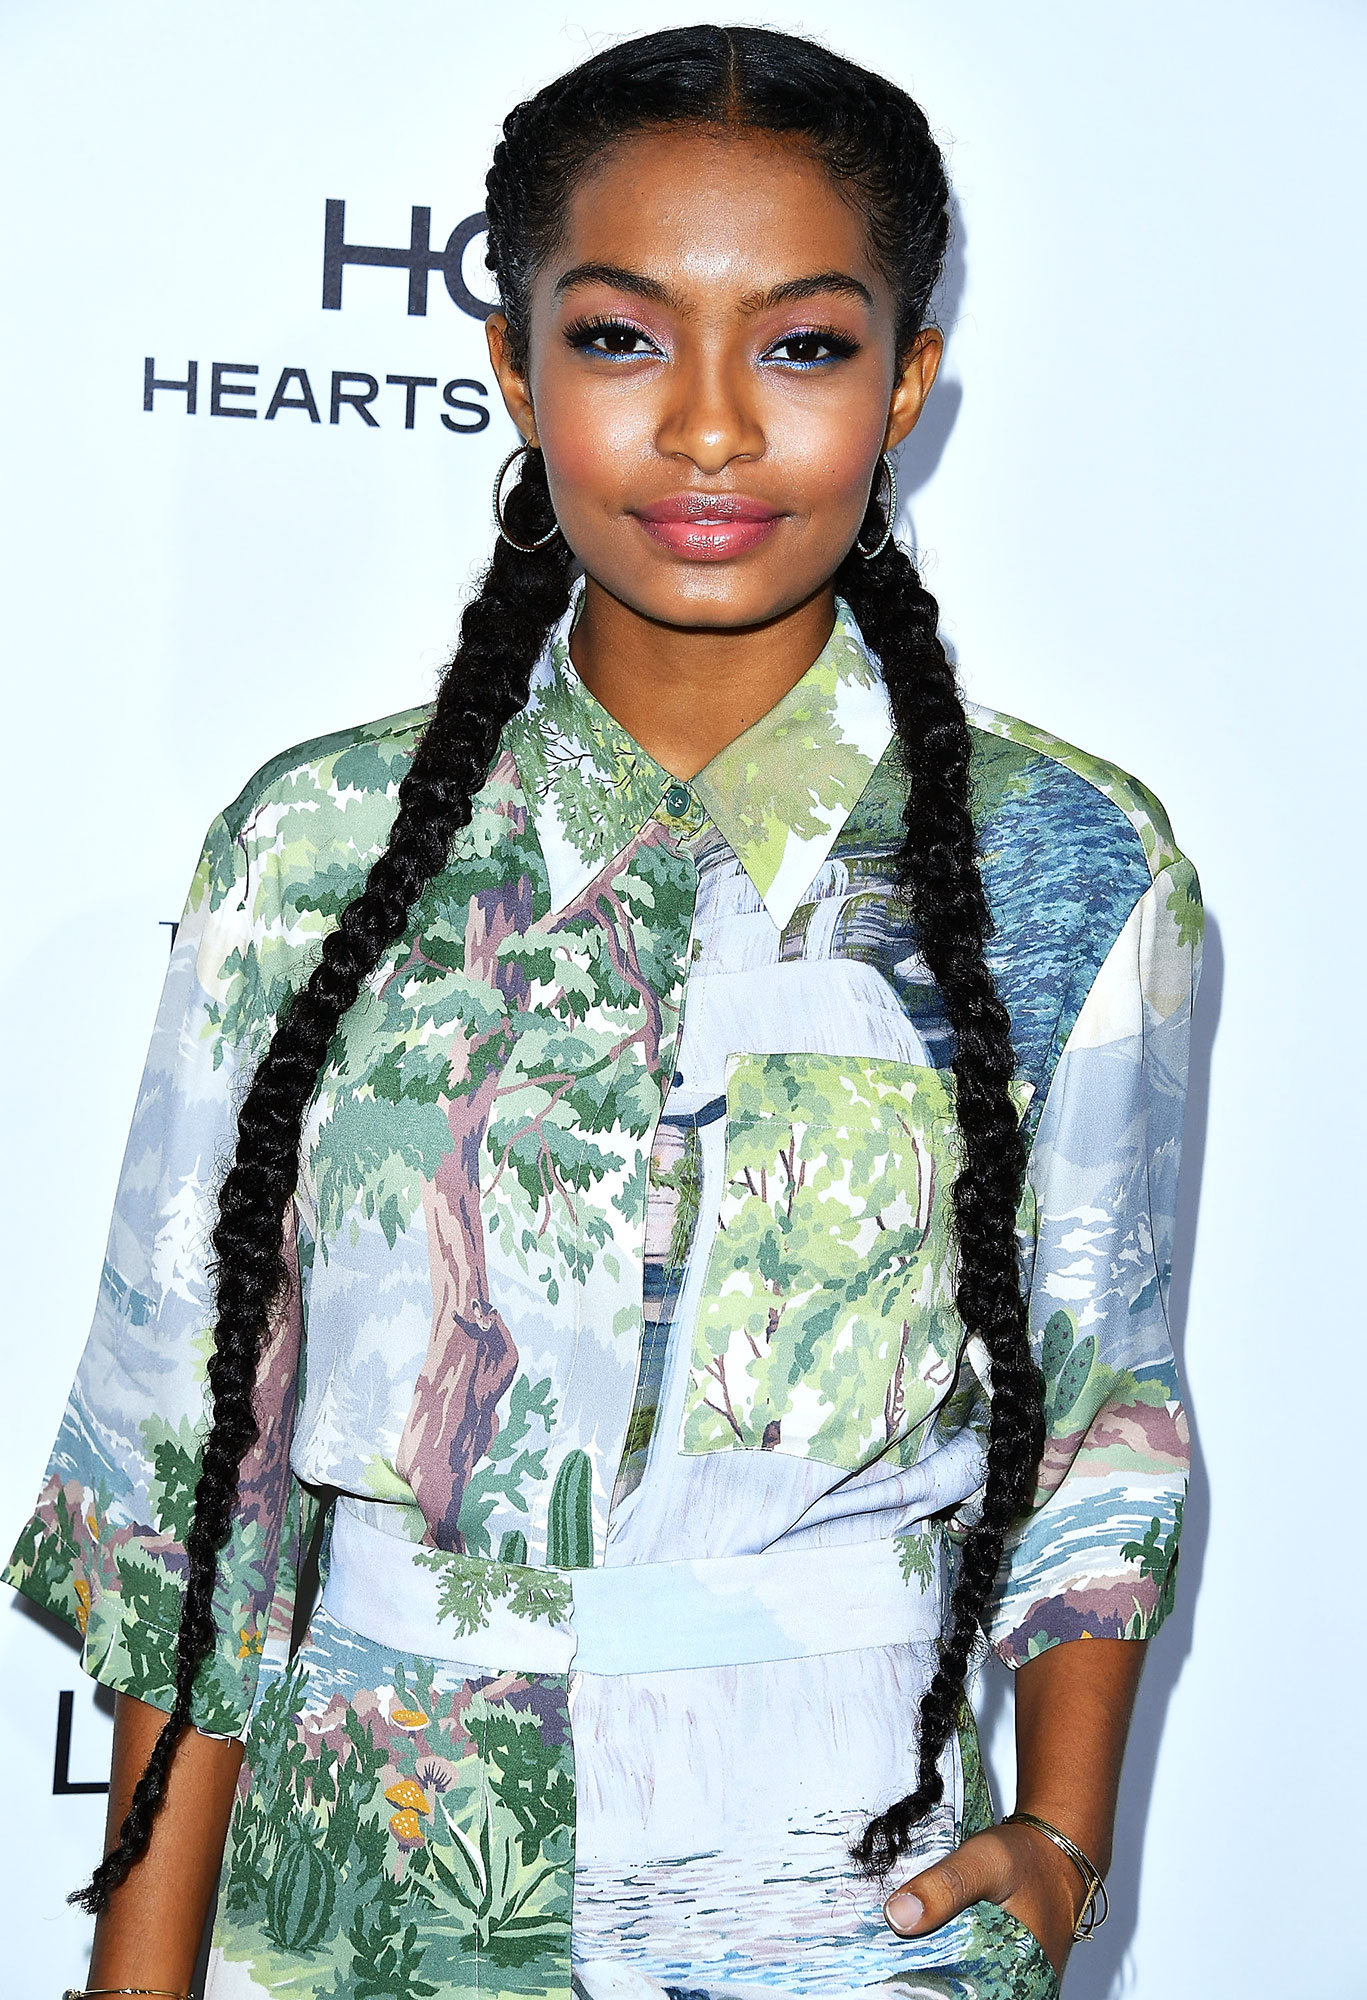 Yara Shahidi - The only thing better than one mile-long Dutch braid? A pair of them, as the Black-ish star proved at the 2016 Elle Women in Hollywood Awards.